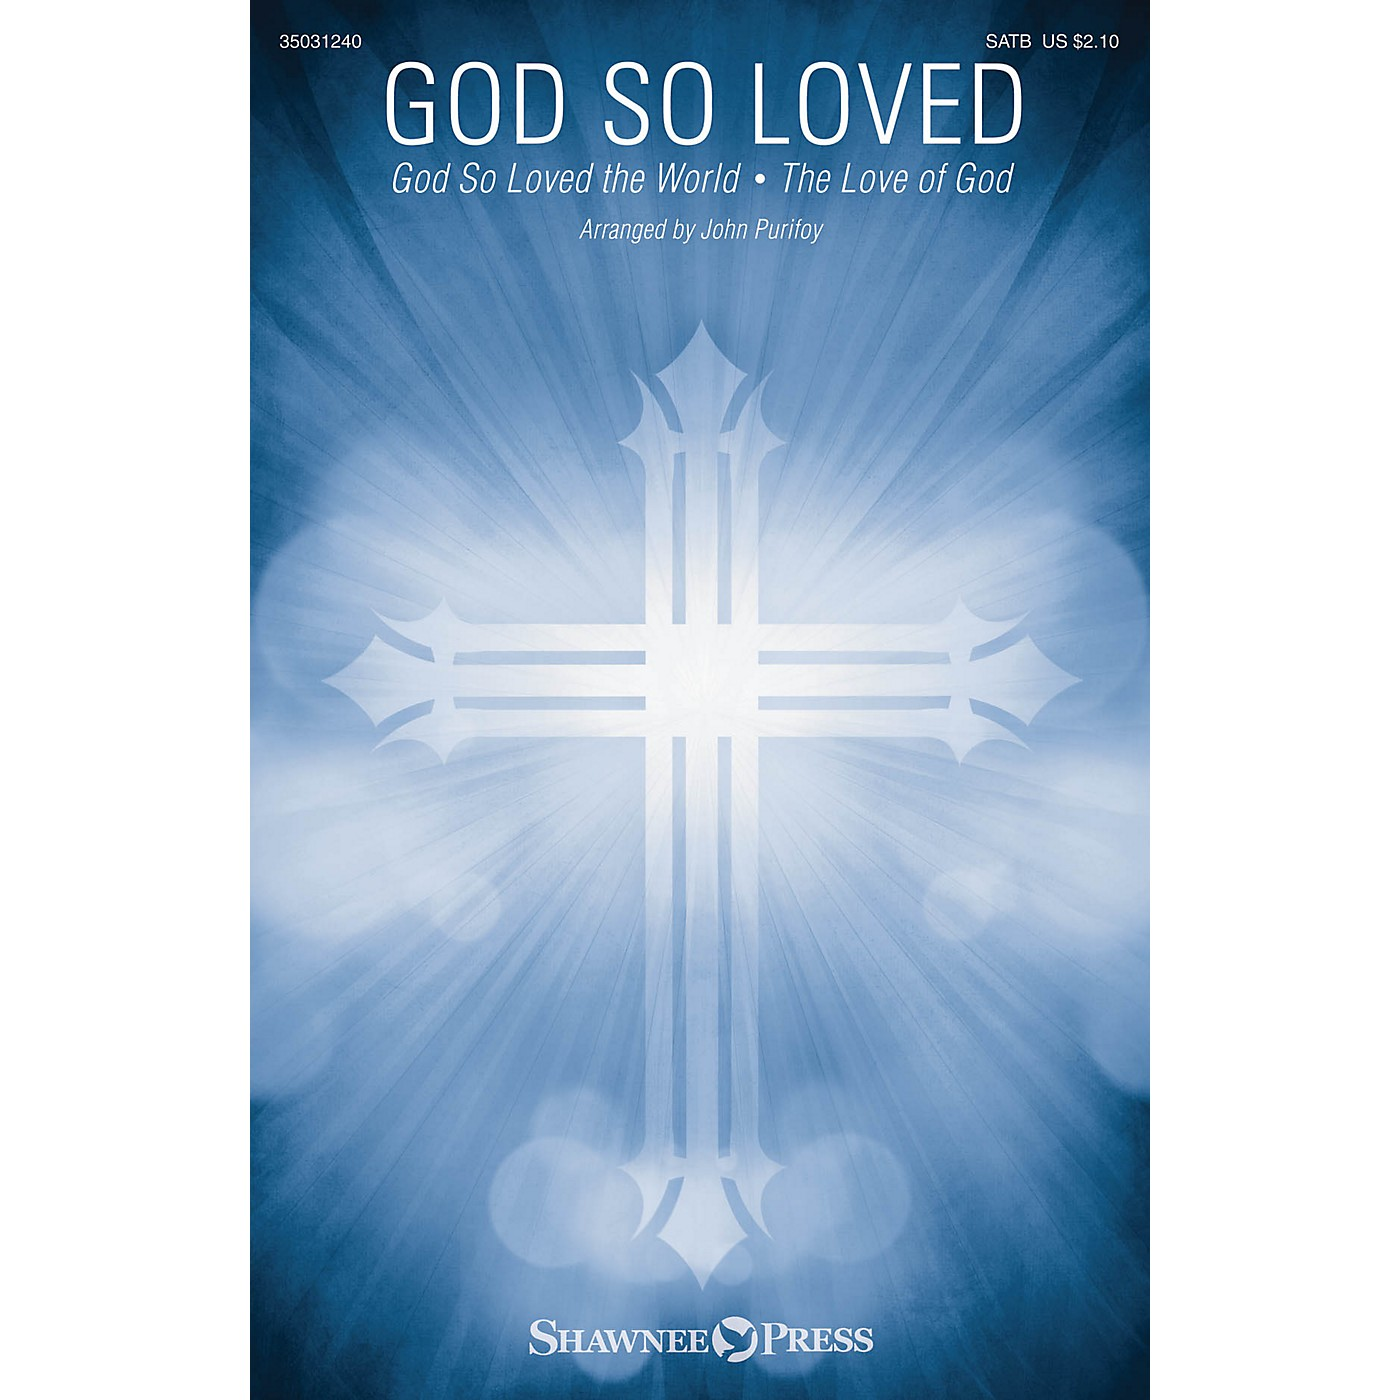 Shawnee Press God So Loved (with God So Loved the World and The Love of God) SATB arranged by John Purifoy thumbnail